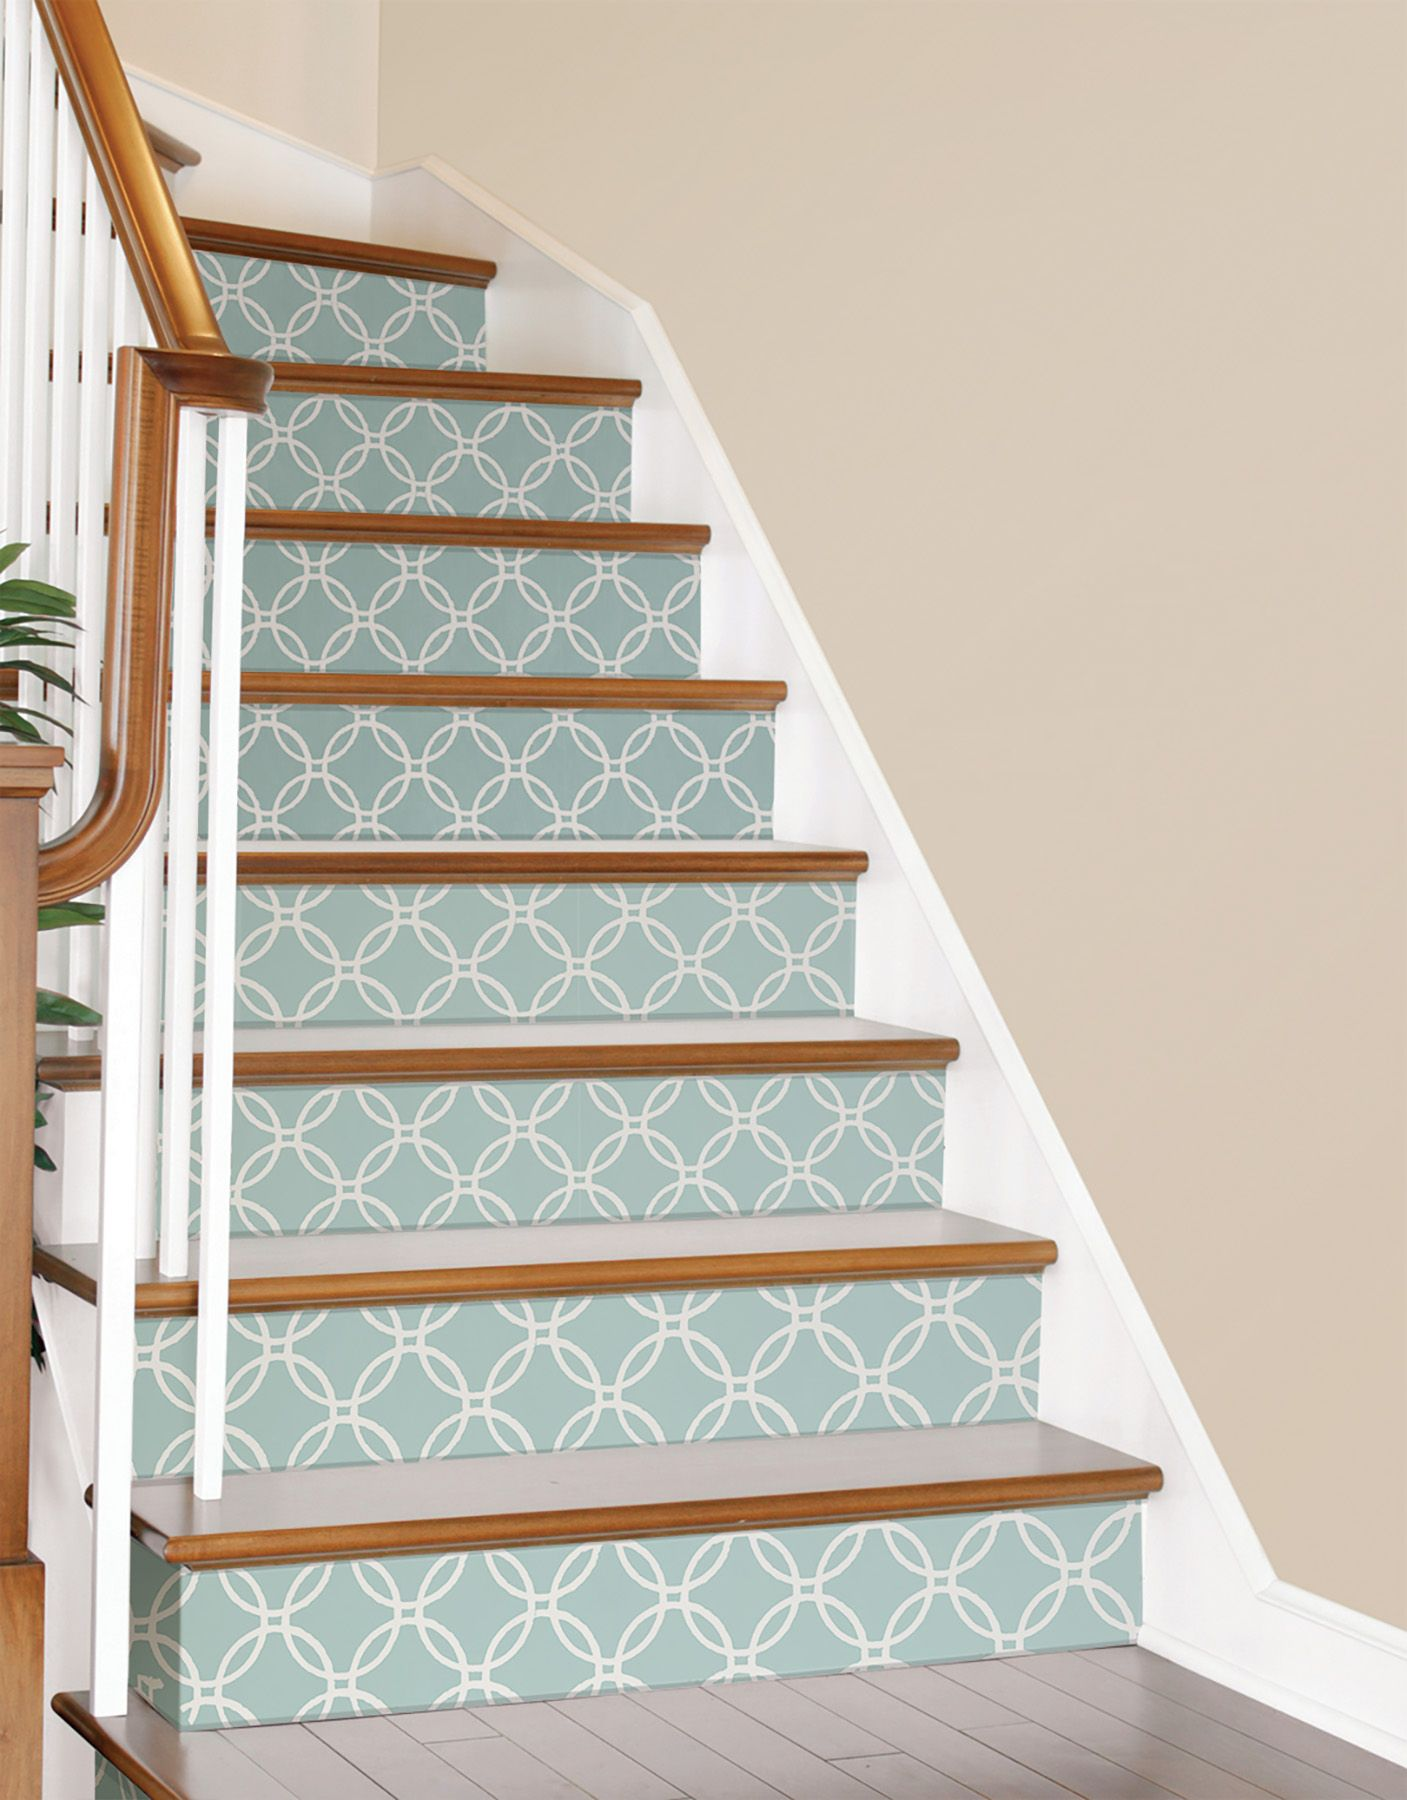 Make Your Stairs Look Pretty Blue Links Peel And Stick Wallpaper By Nuwallpaper Peel And Stick Wallpaper Nuwallpaper Wallpaper Stairs